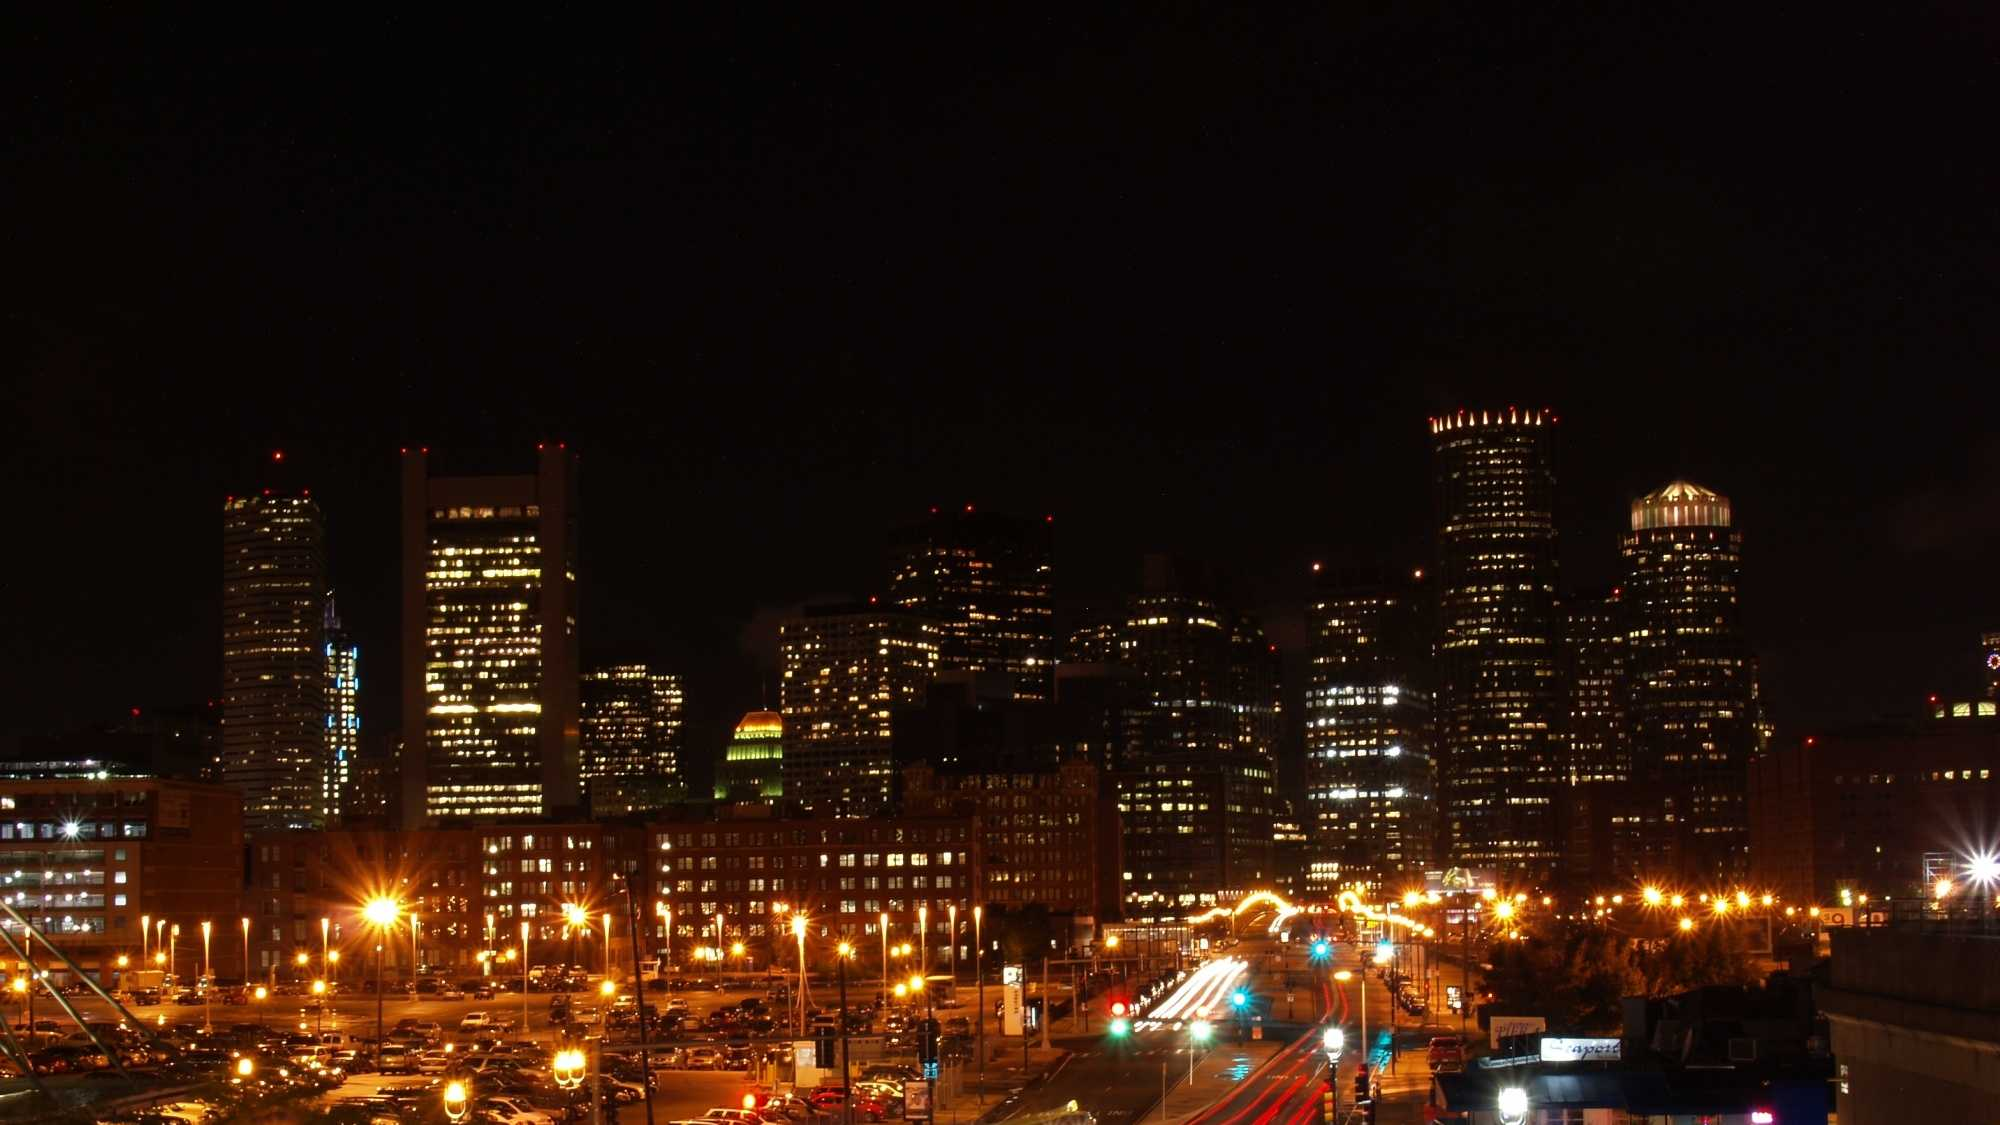 Boston at Night - Good Still